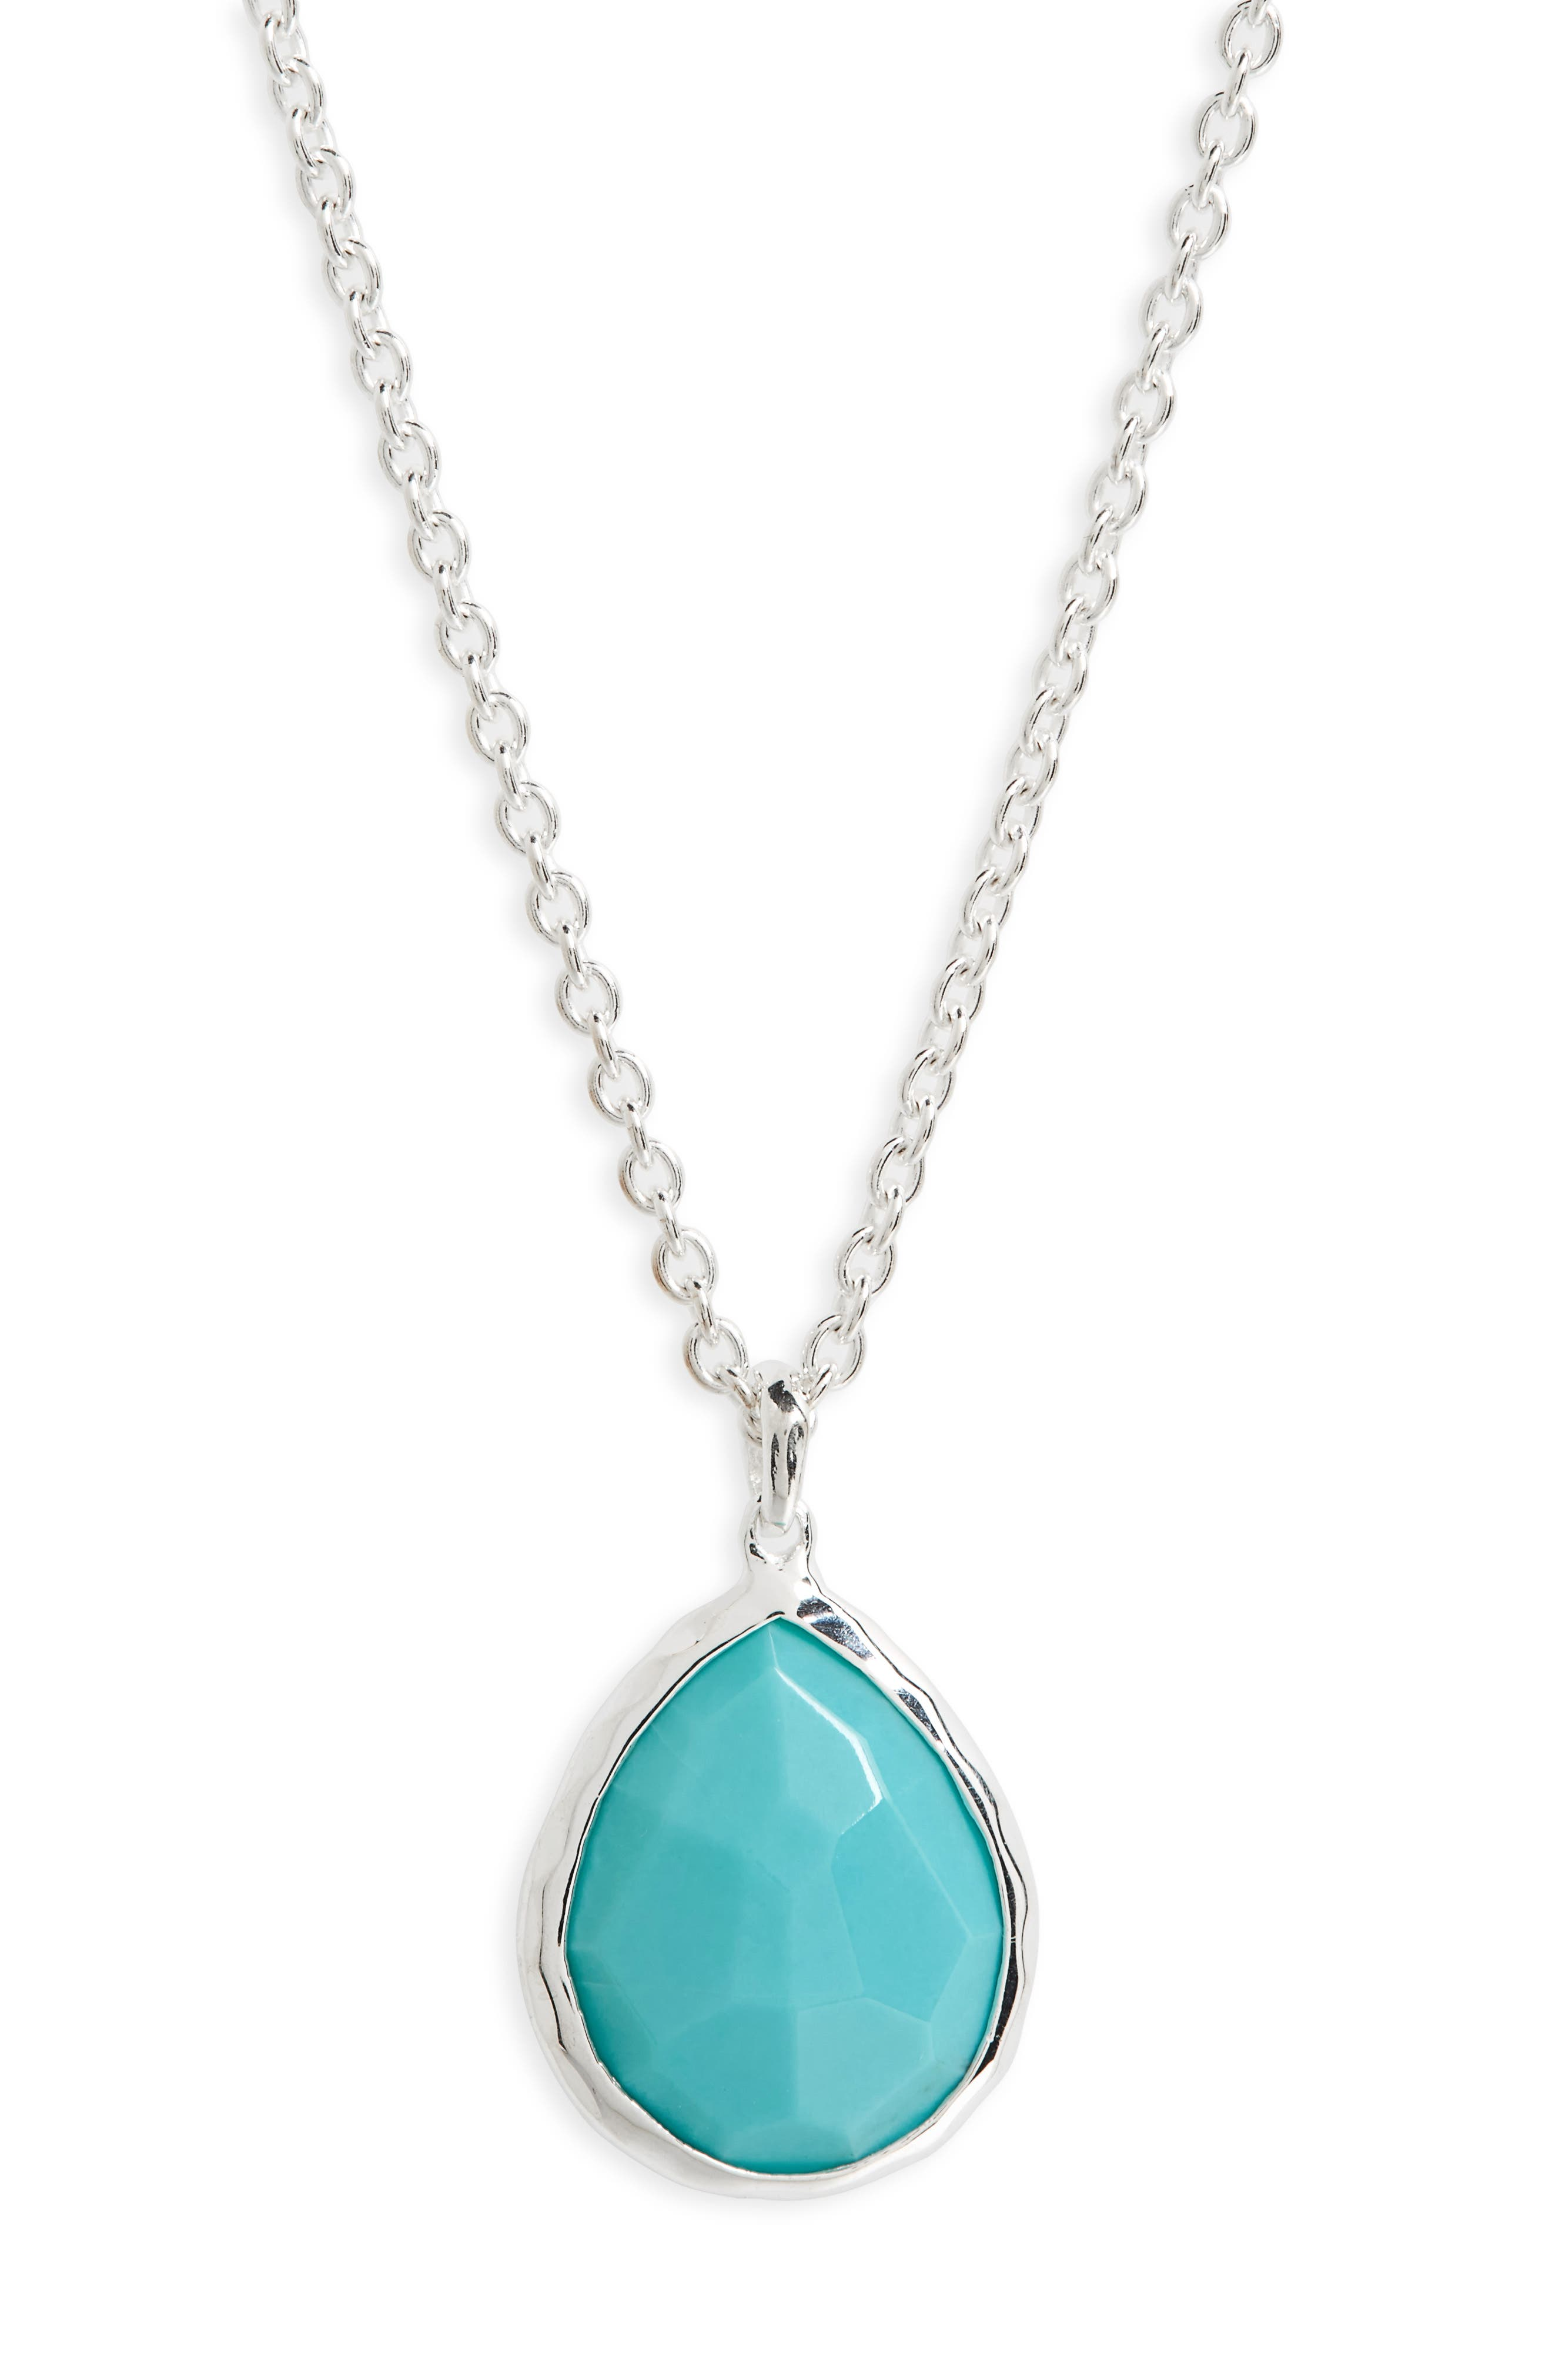 'Wonderland' Mini Teardrop Pendant Necklace,                         Main,                         color, Sterling Silver/ Turquoise